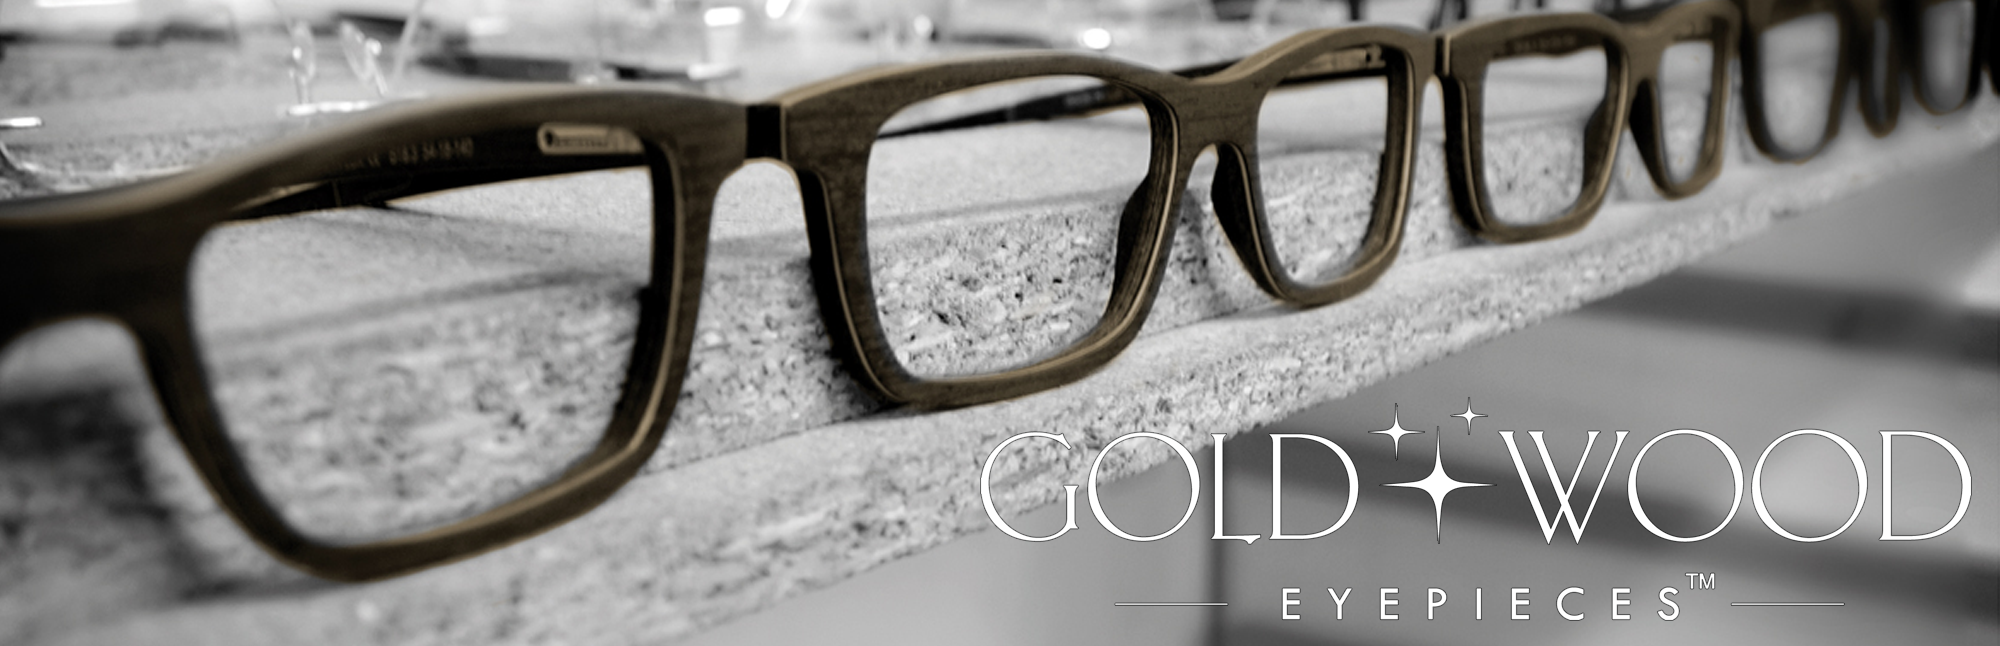 f9e683dfa077 Gold   Wood Designer Glasses - Gold and Wood Eyewear